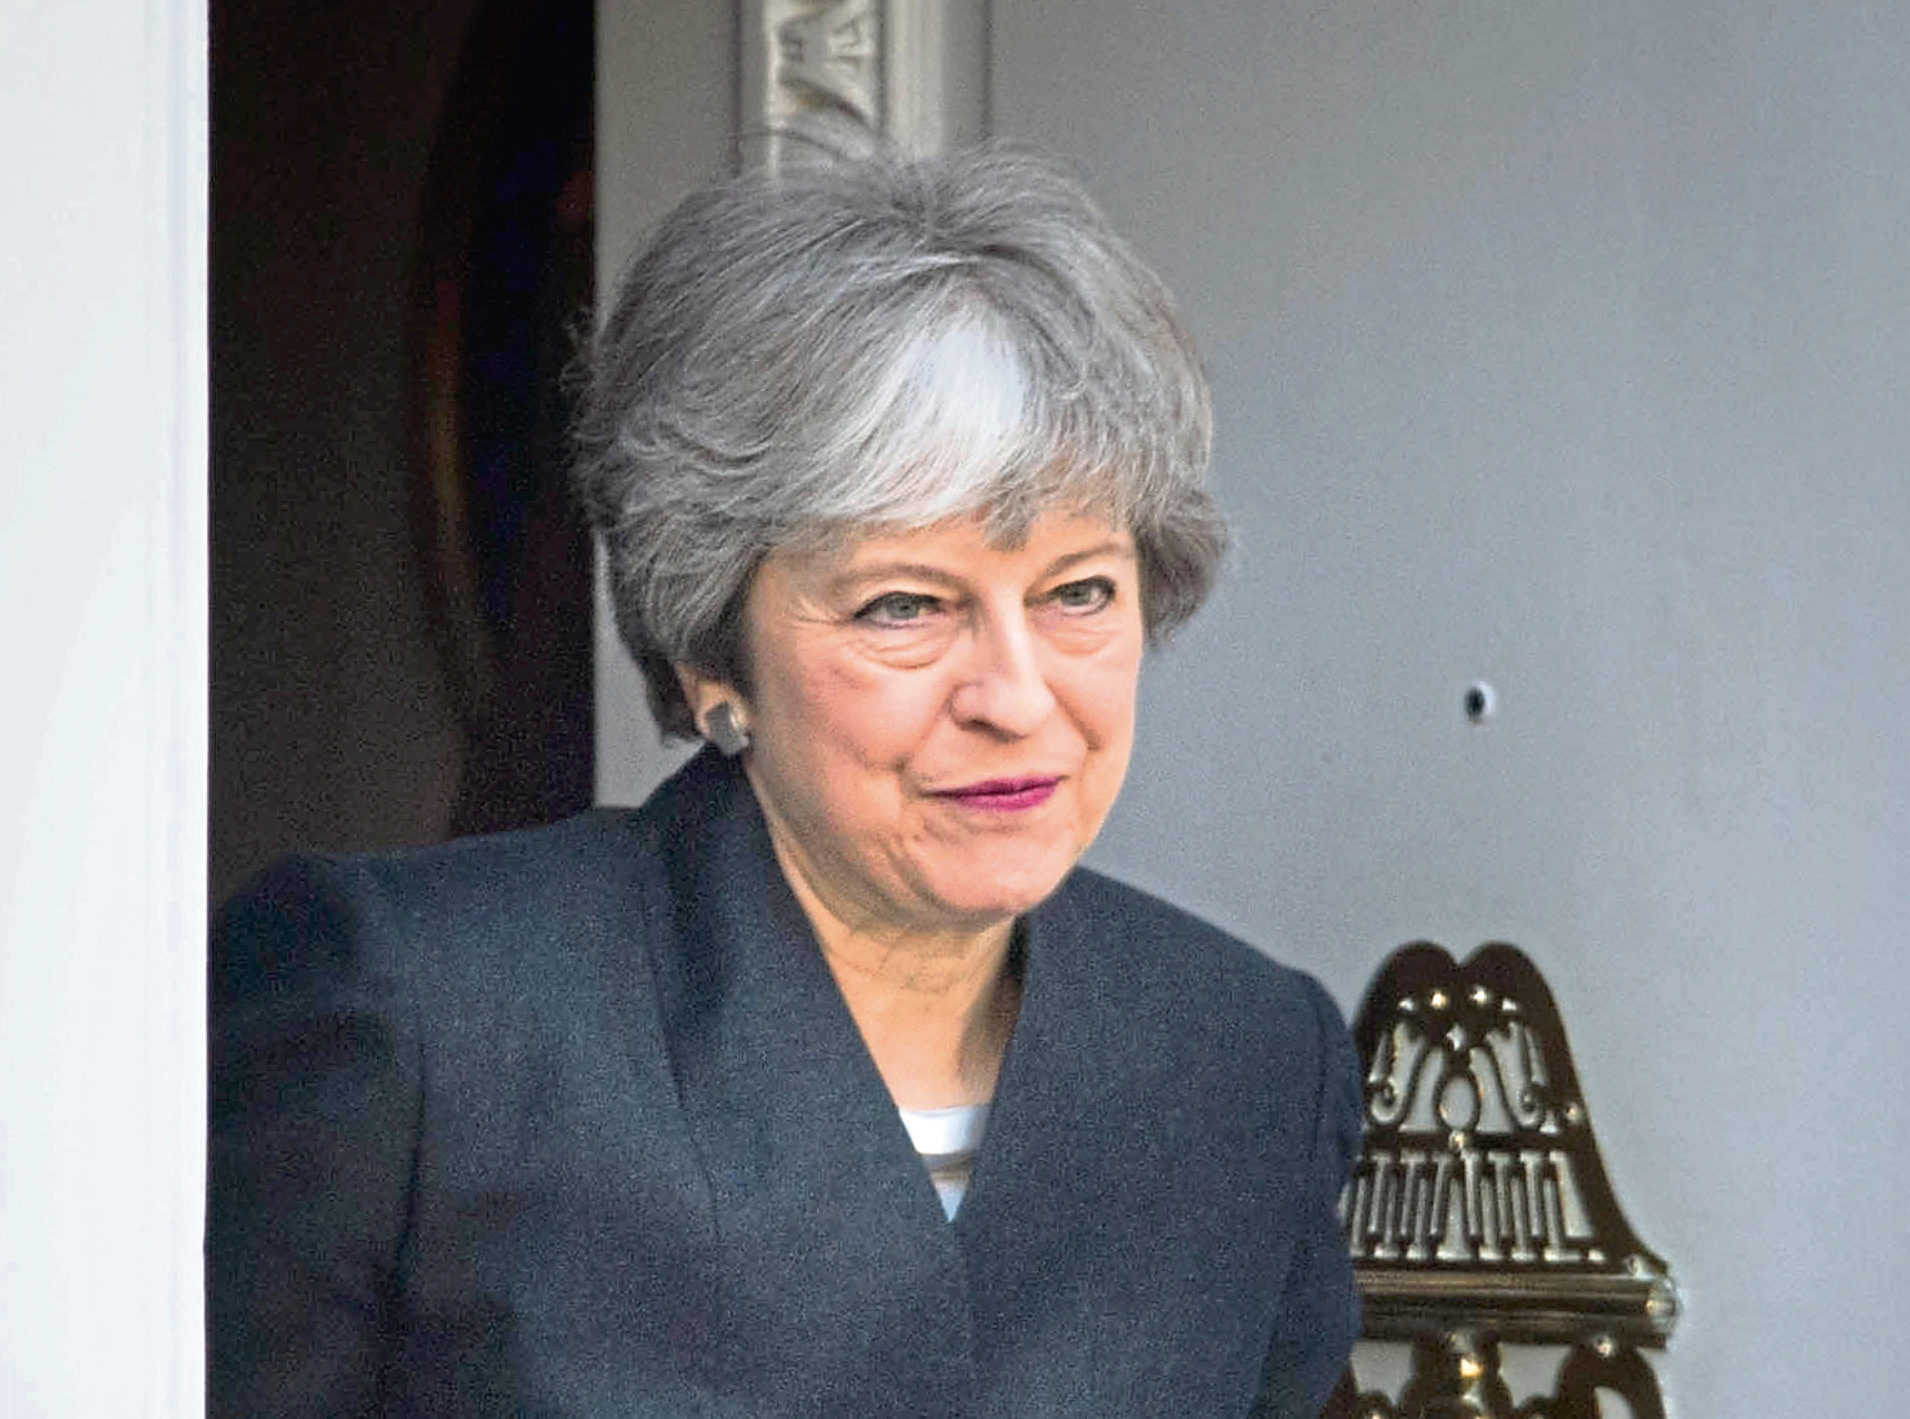 Prime Minister Theresa May leaves Brussels to return to the UK after the European Council in Brussels agreed to a second extension to the Brexit process.